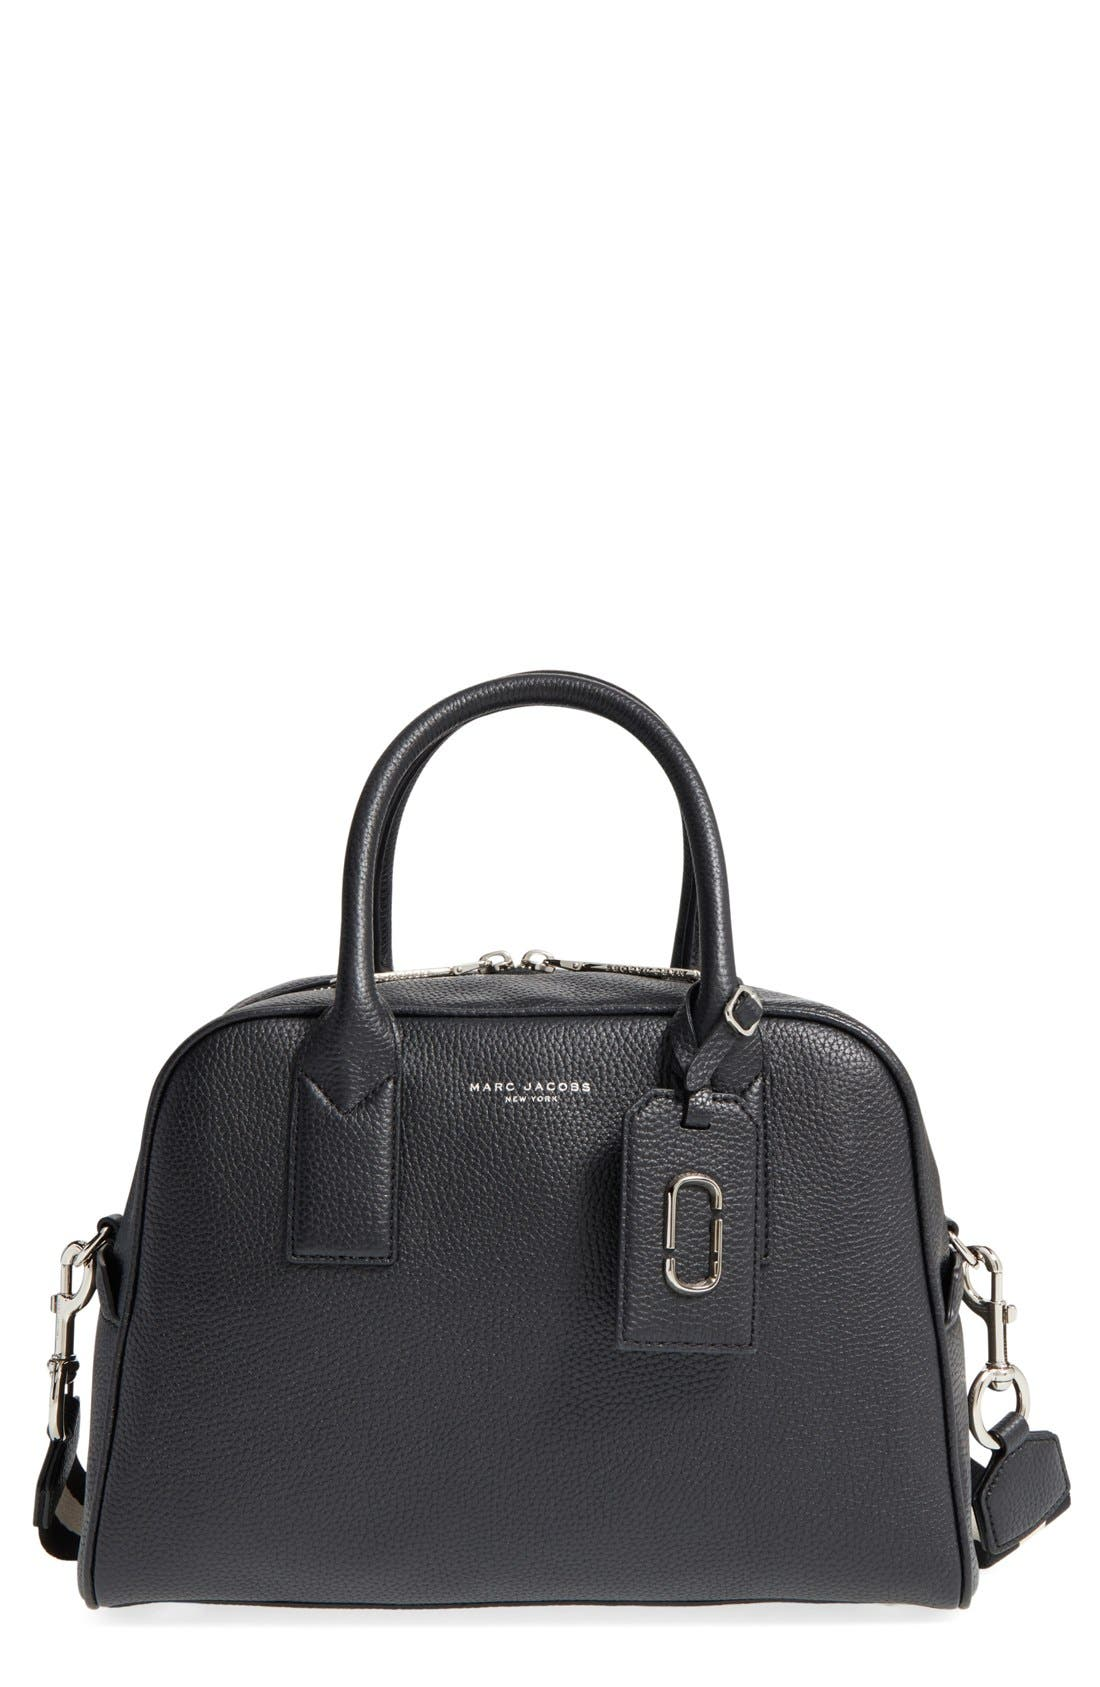 Alternate Image 1 Selected - MARC JACOBS 'Gotham' Bauletto Leather Satchel